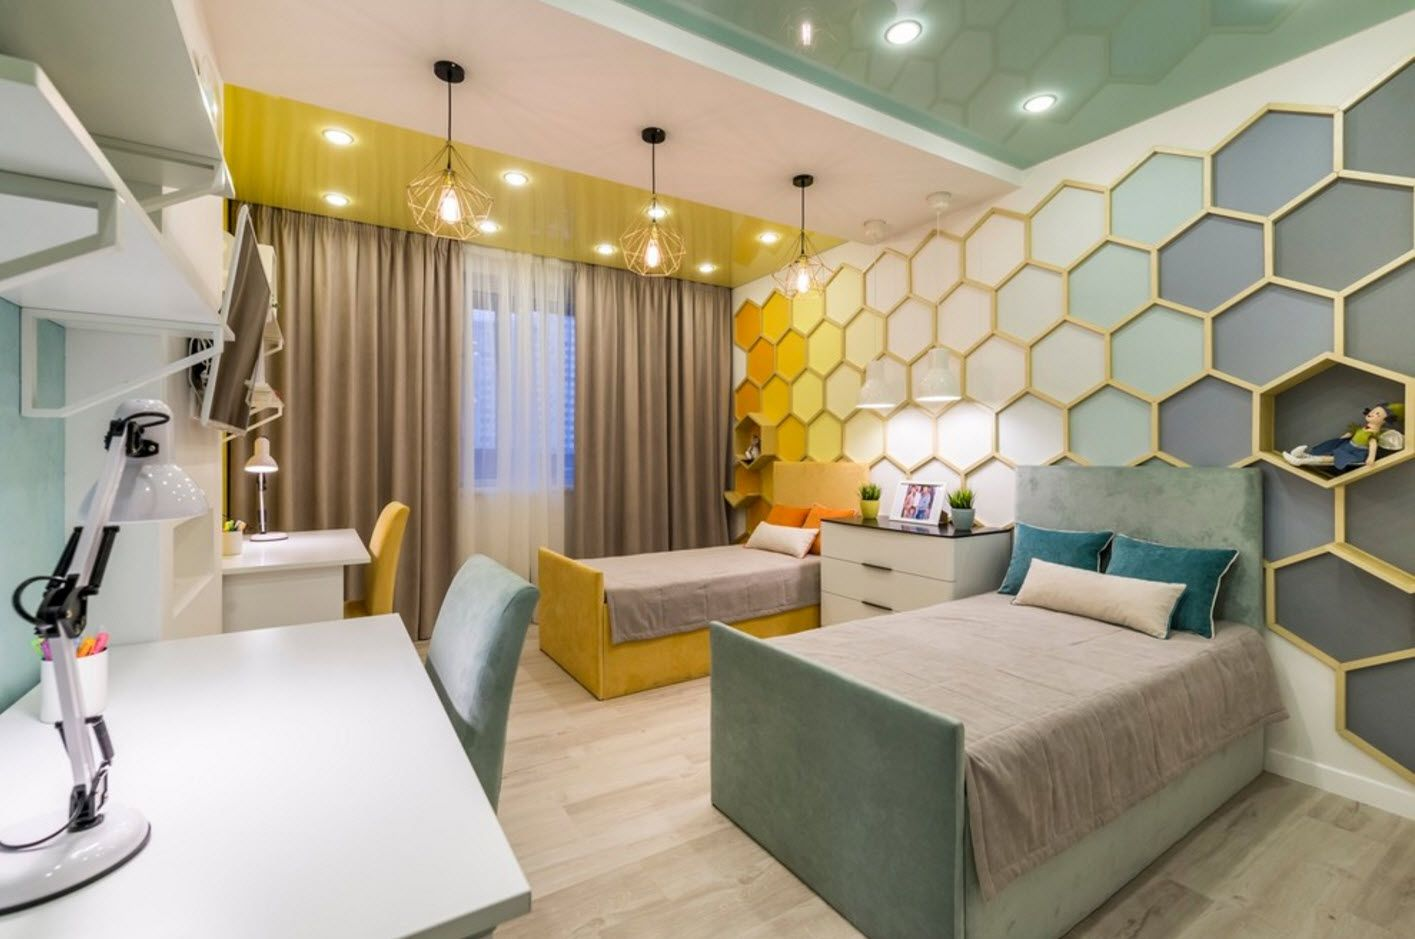 honeycomb wall decoration